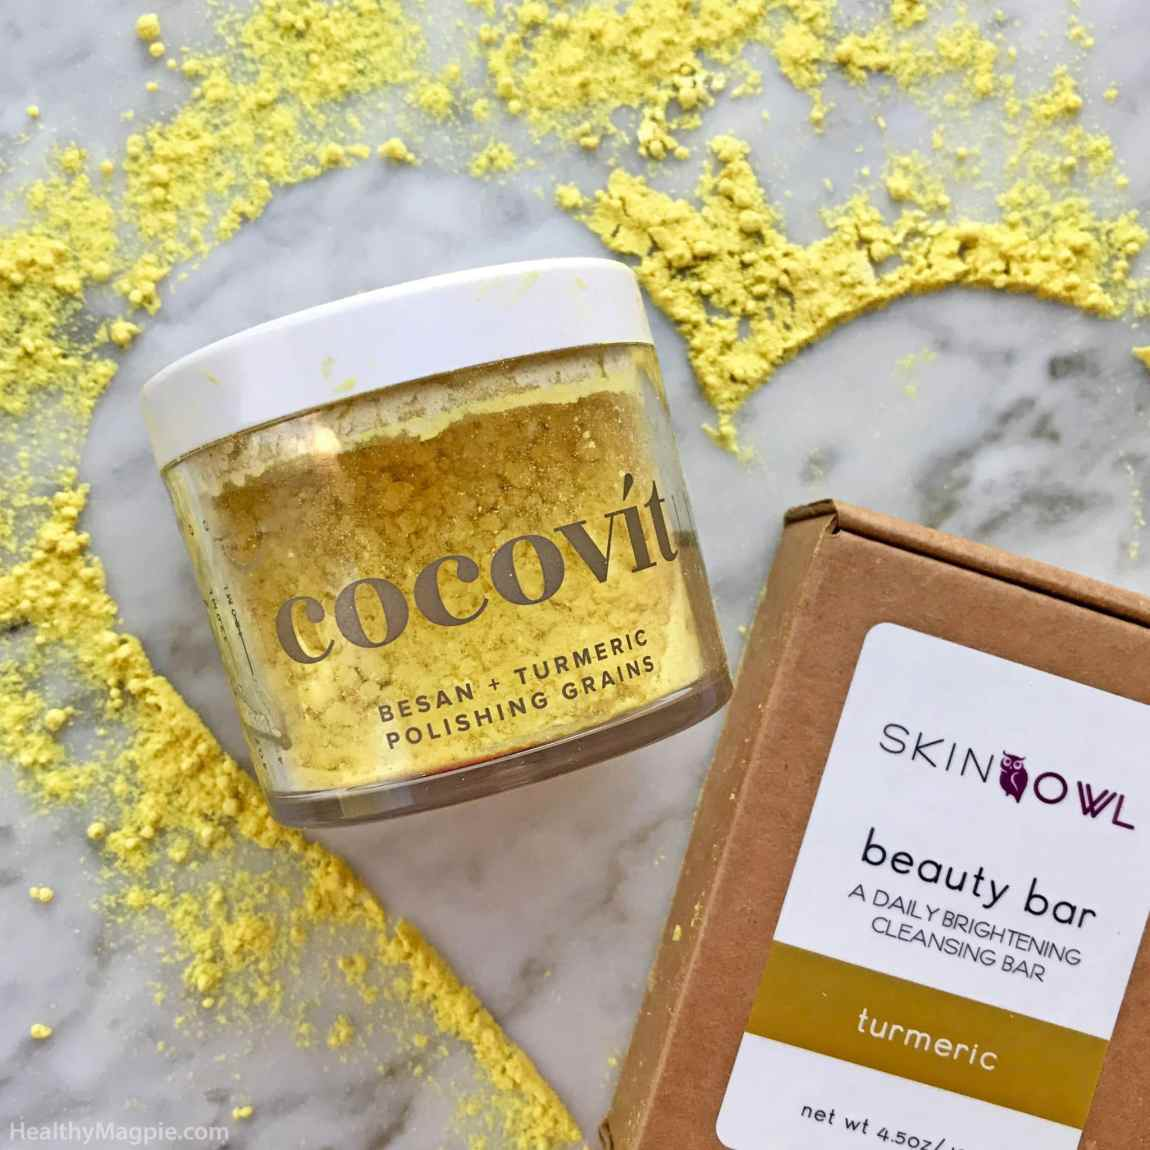 Review and pictures of Cocovit besan and turmeric polishing grains exfoliator and Skin Owl brightening turmeric beauty bar